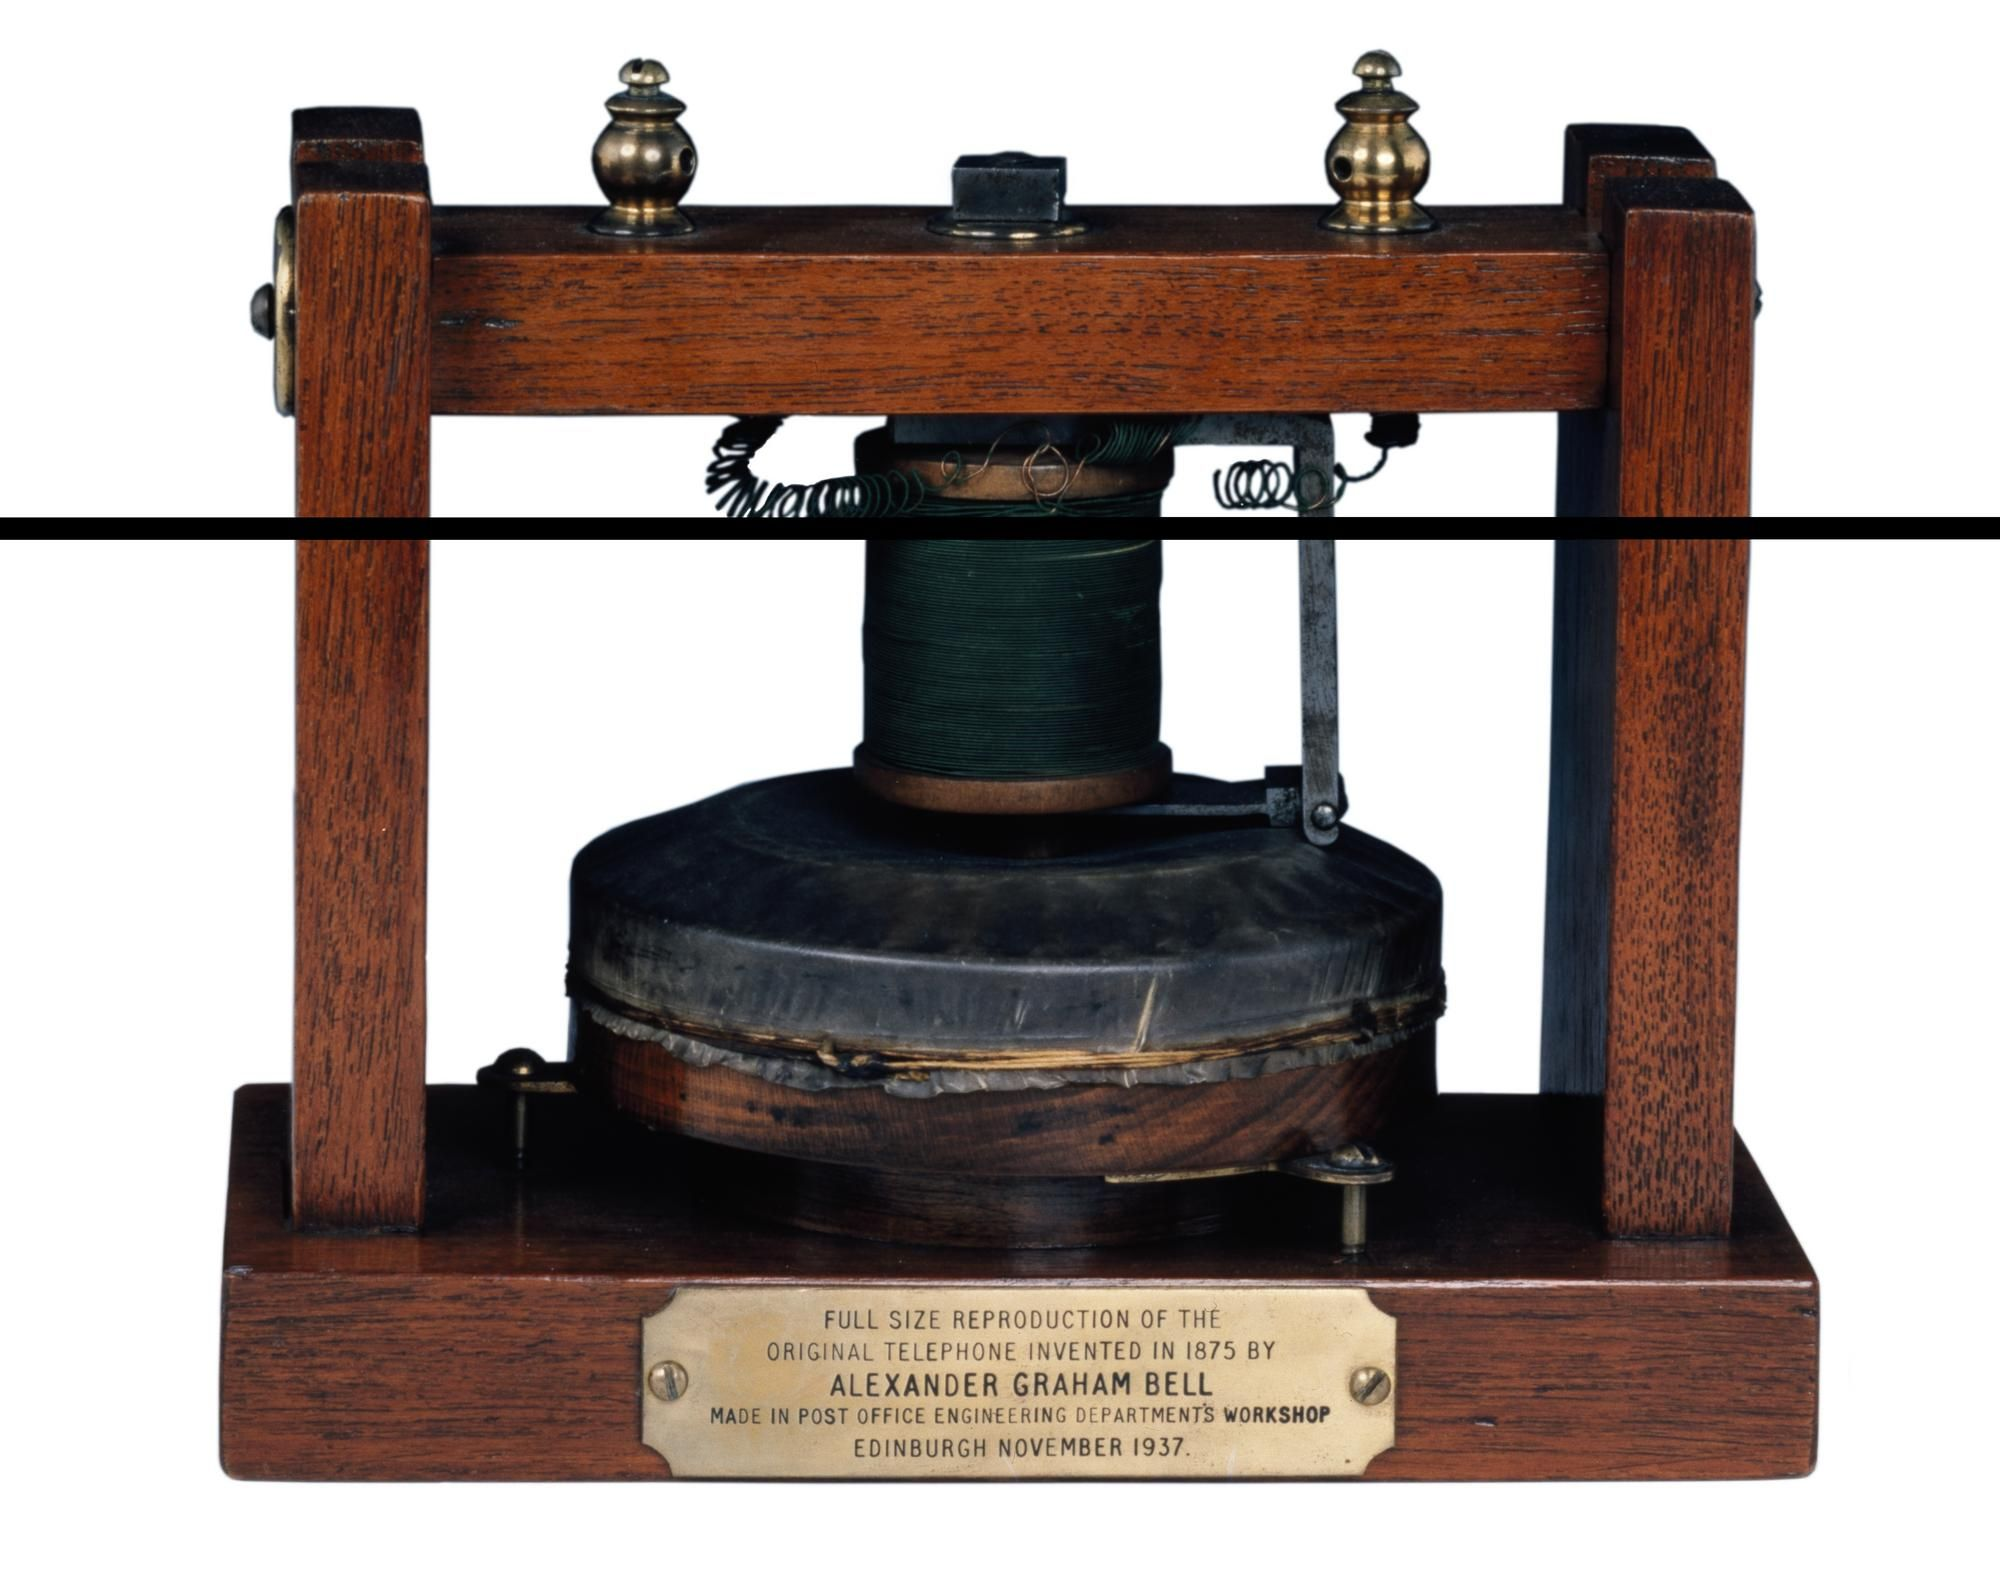 Facsimile of the electric 'gallows' telephone invented by